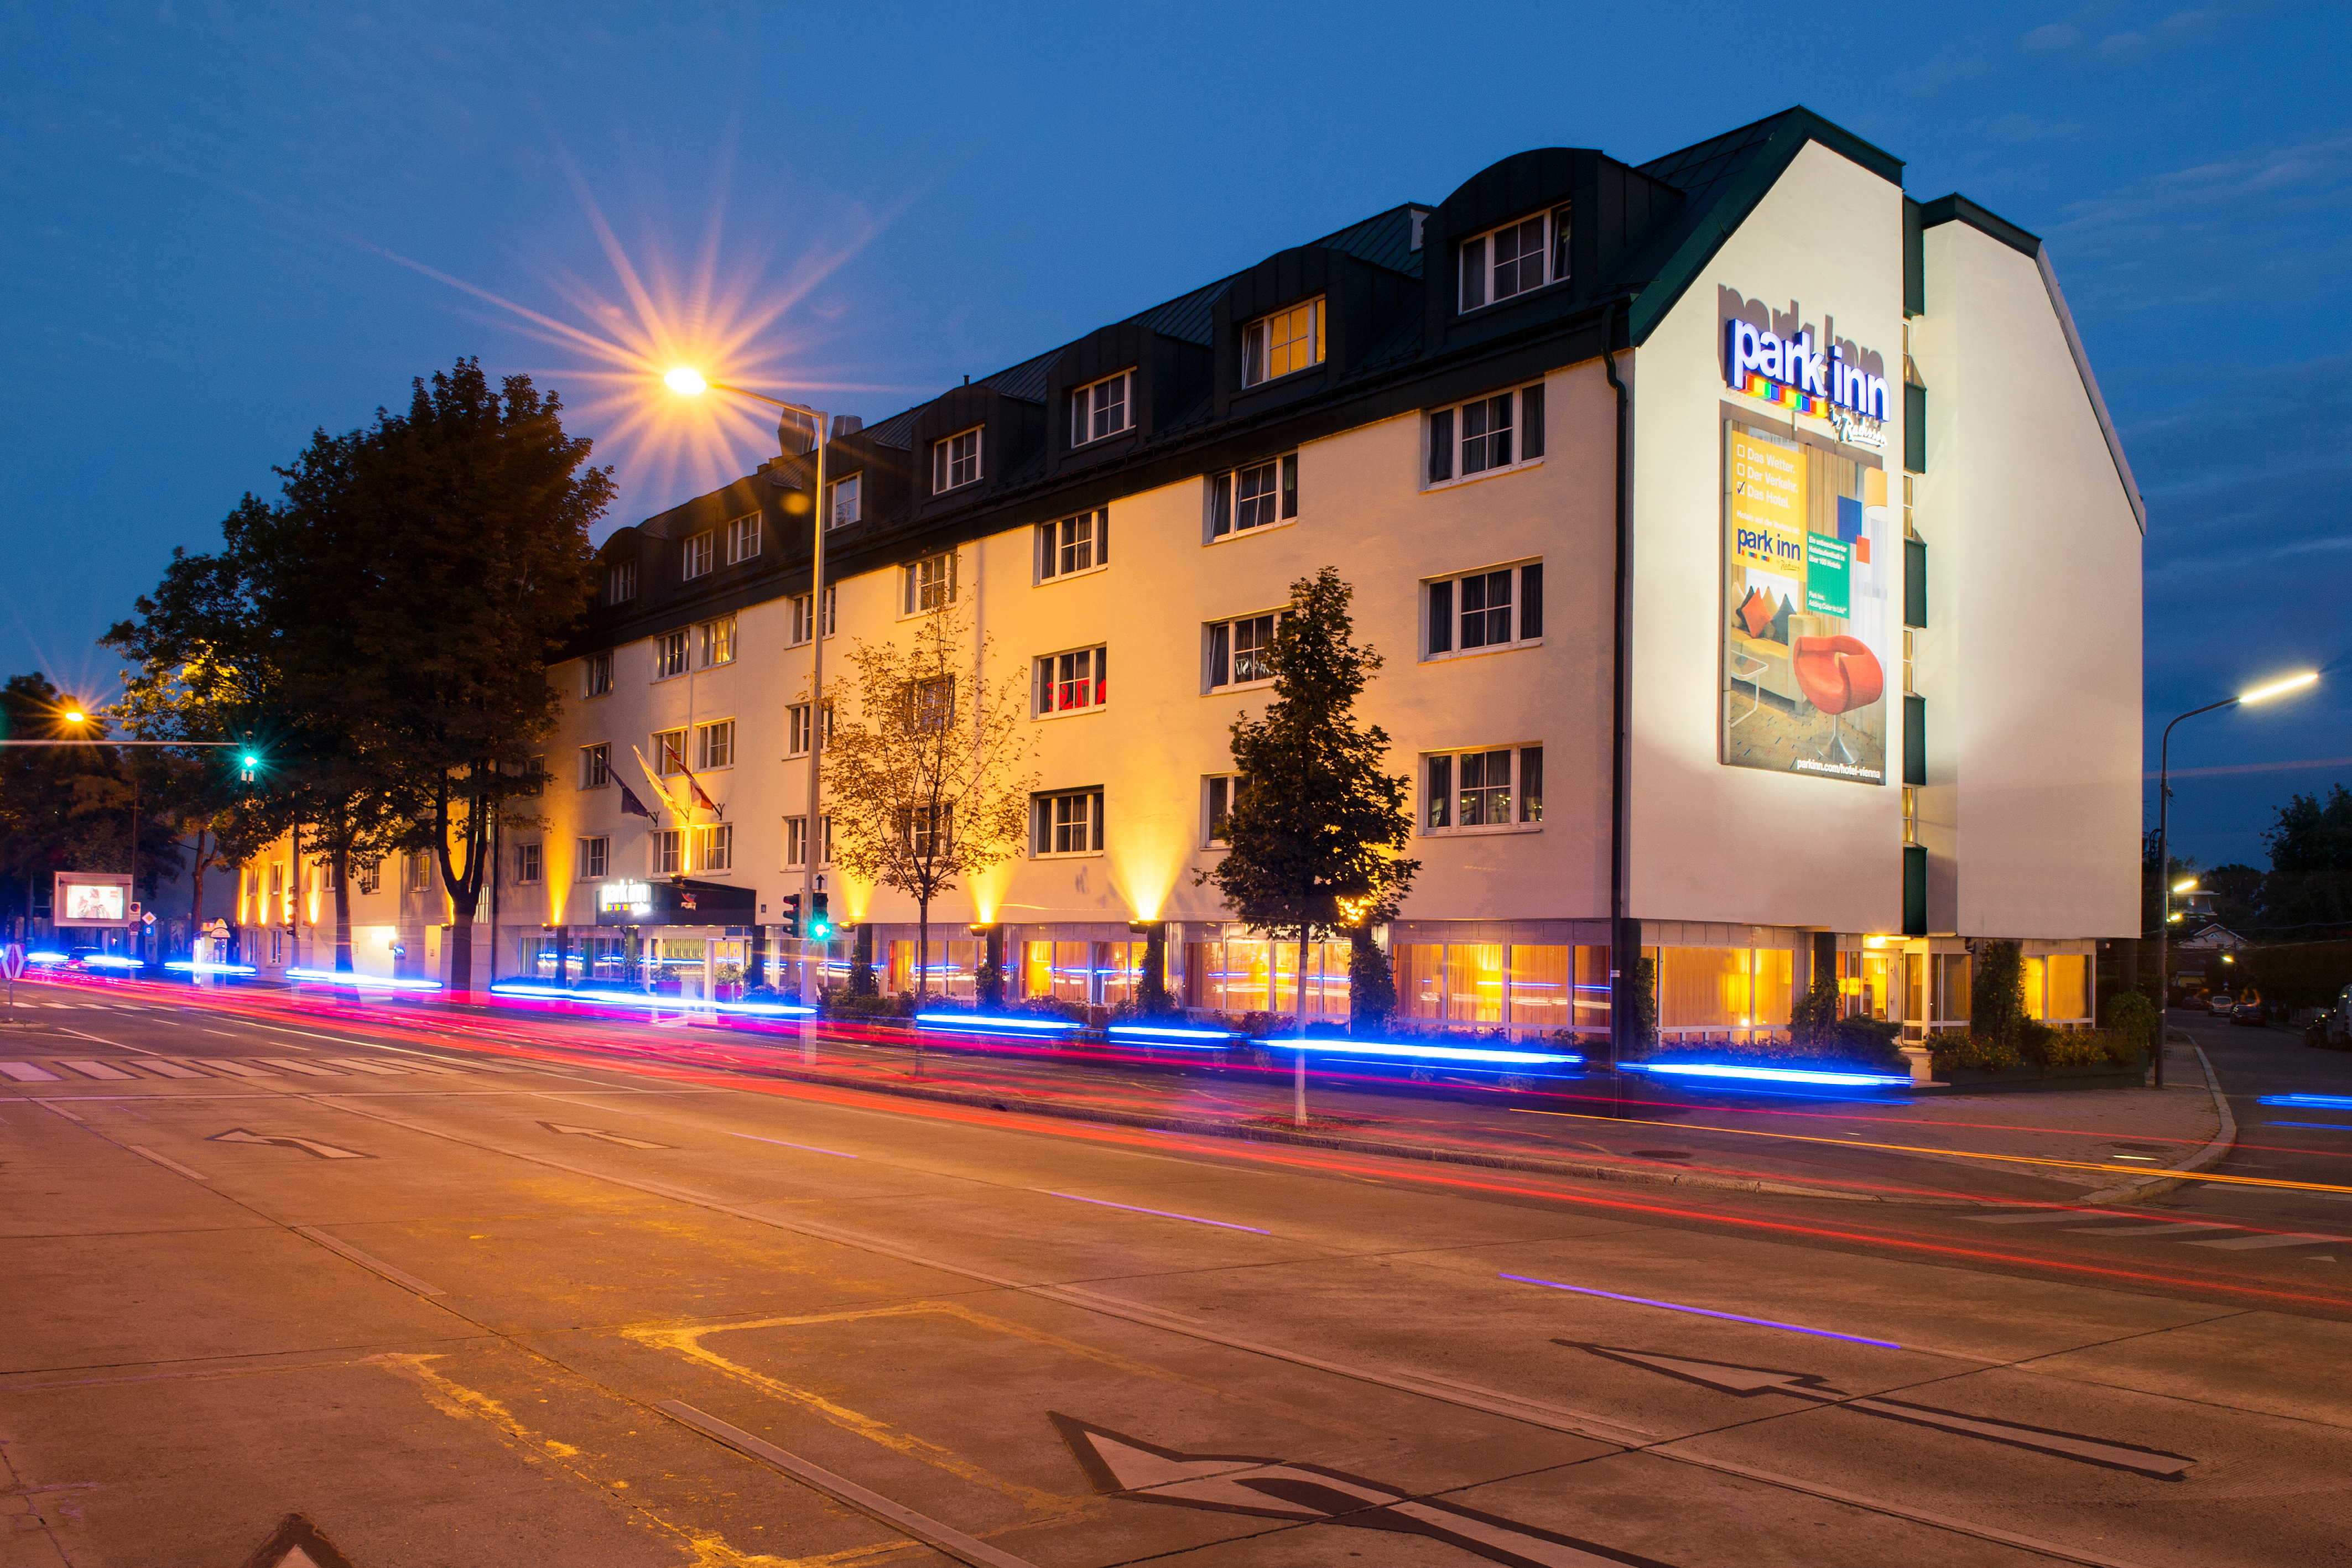 Park Inn by Radisson Uno City